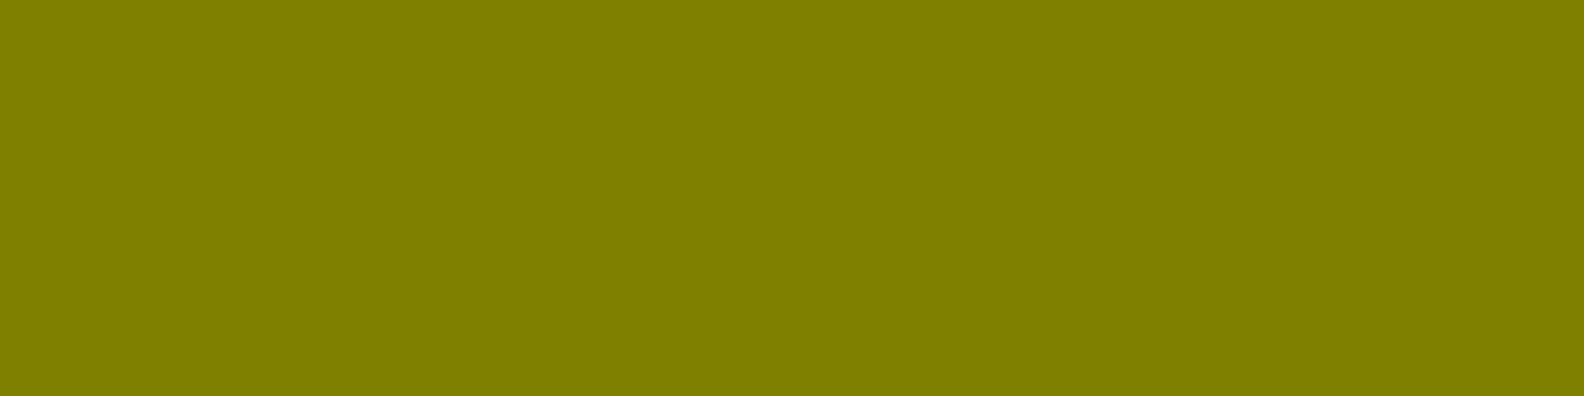 1584x396 Olive Solid Color Background